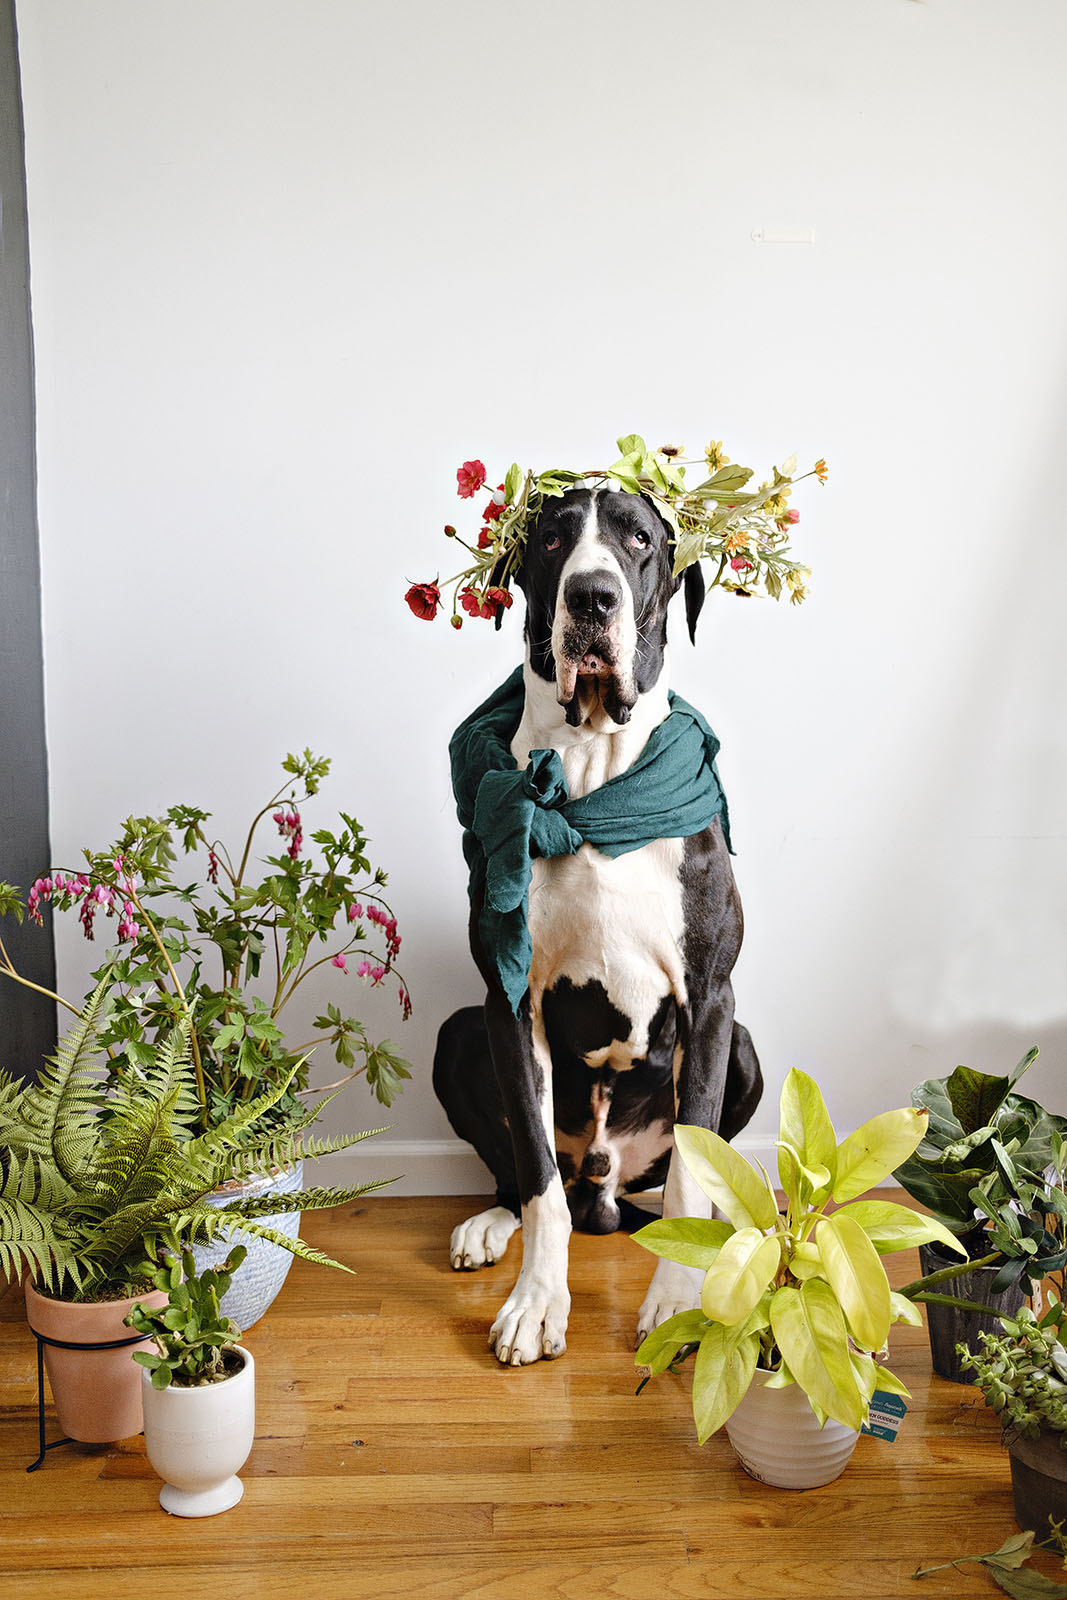 Funny dog photo of a great dane wearing flower crown